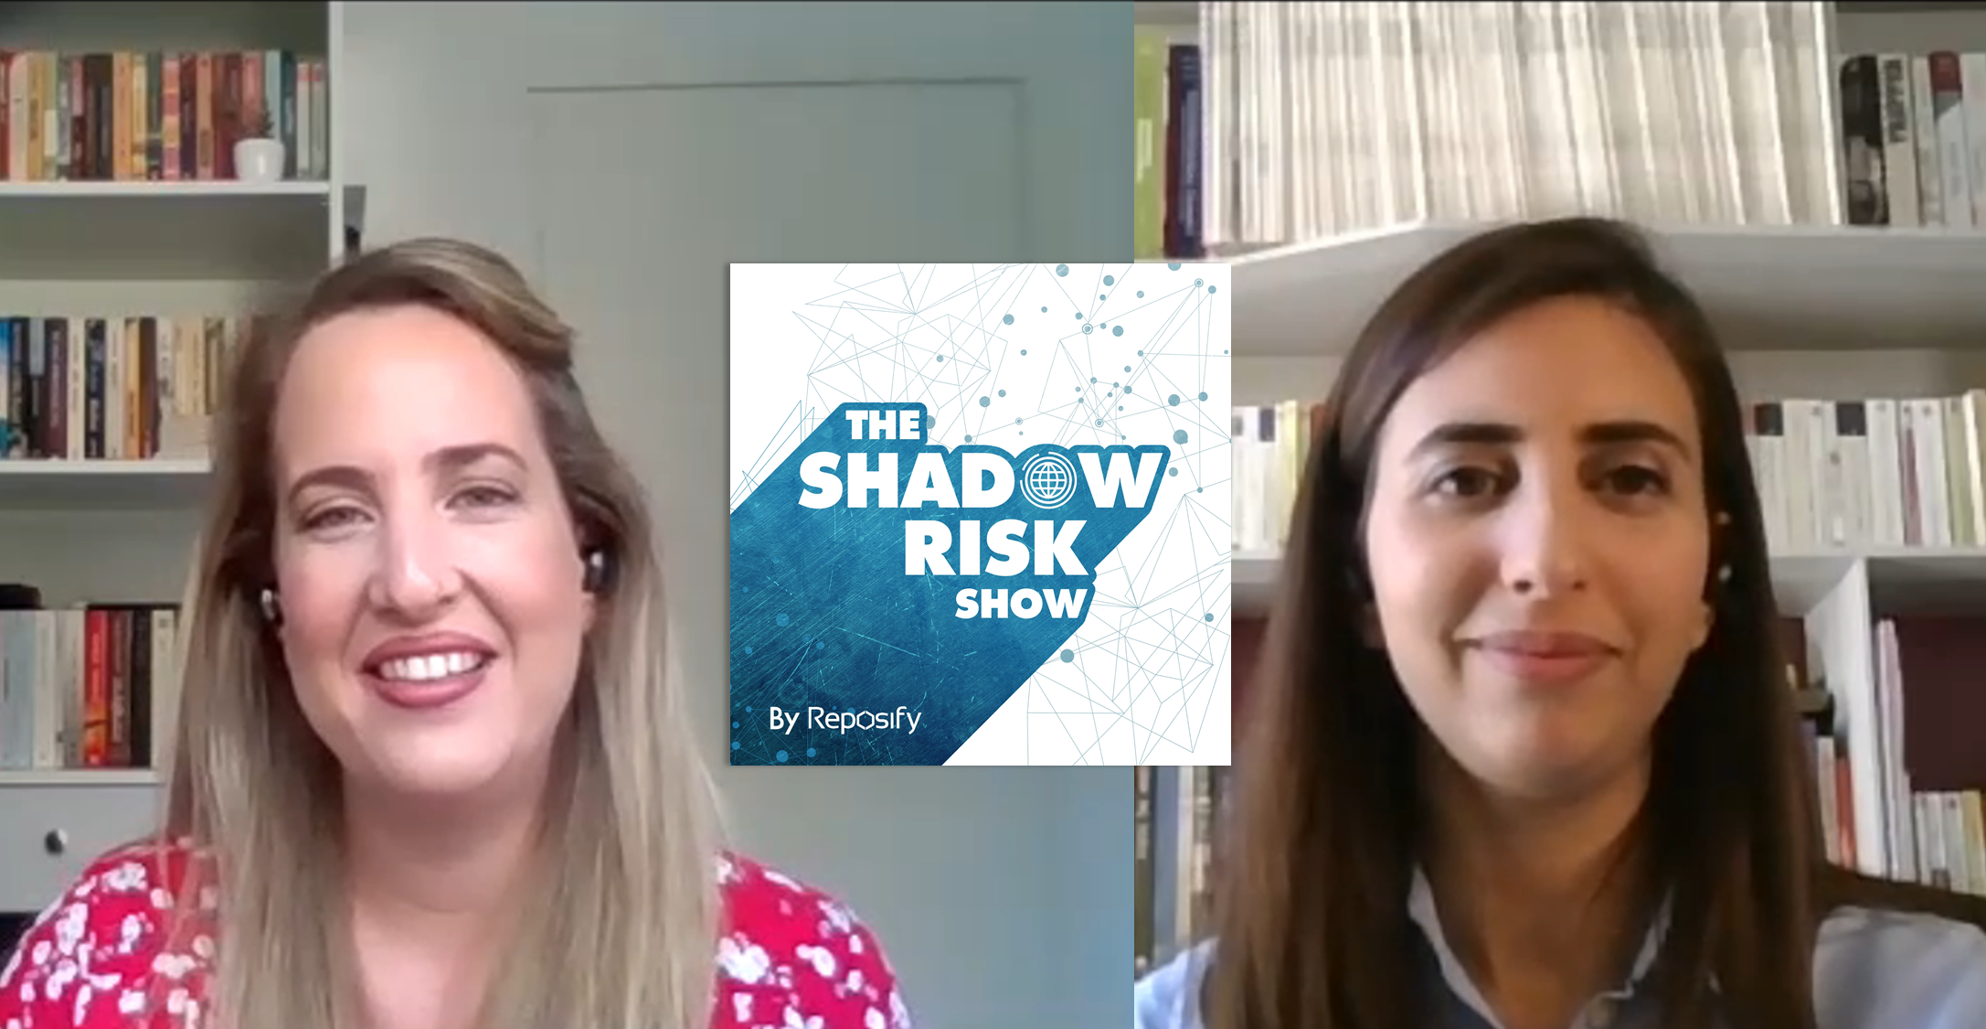 THE SHADOW RISK SHOW - #1 Exposed Dev Index Pages